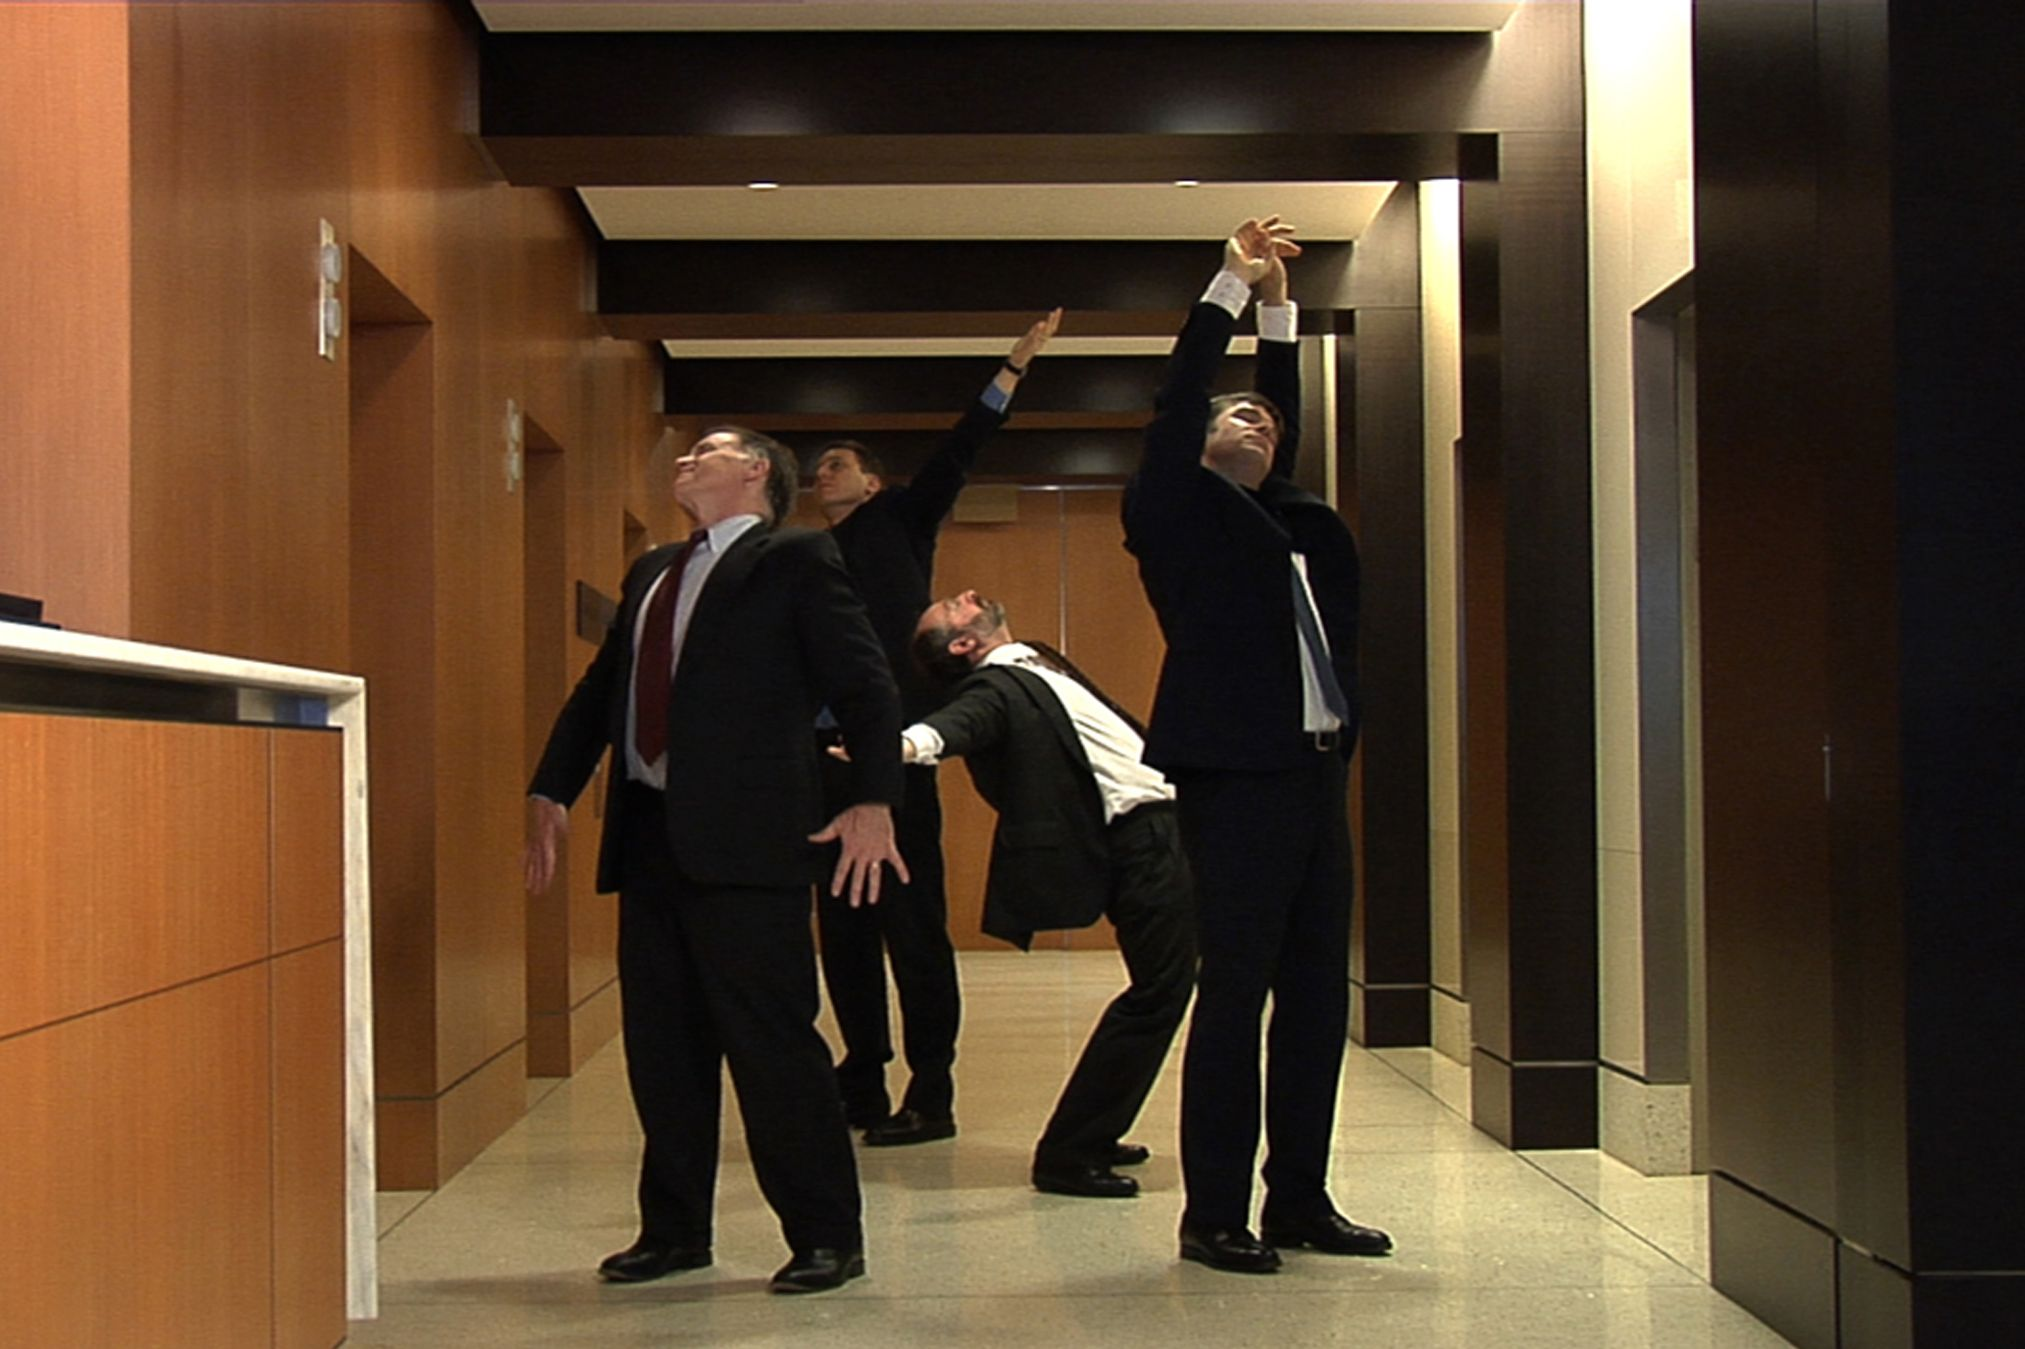 Men in suits stretch in a hall with wood panels.